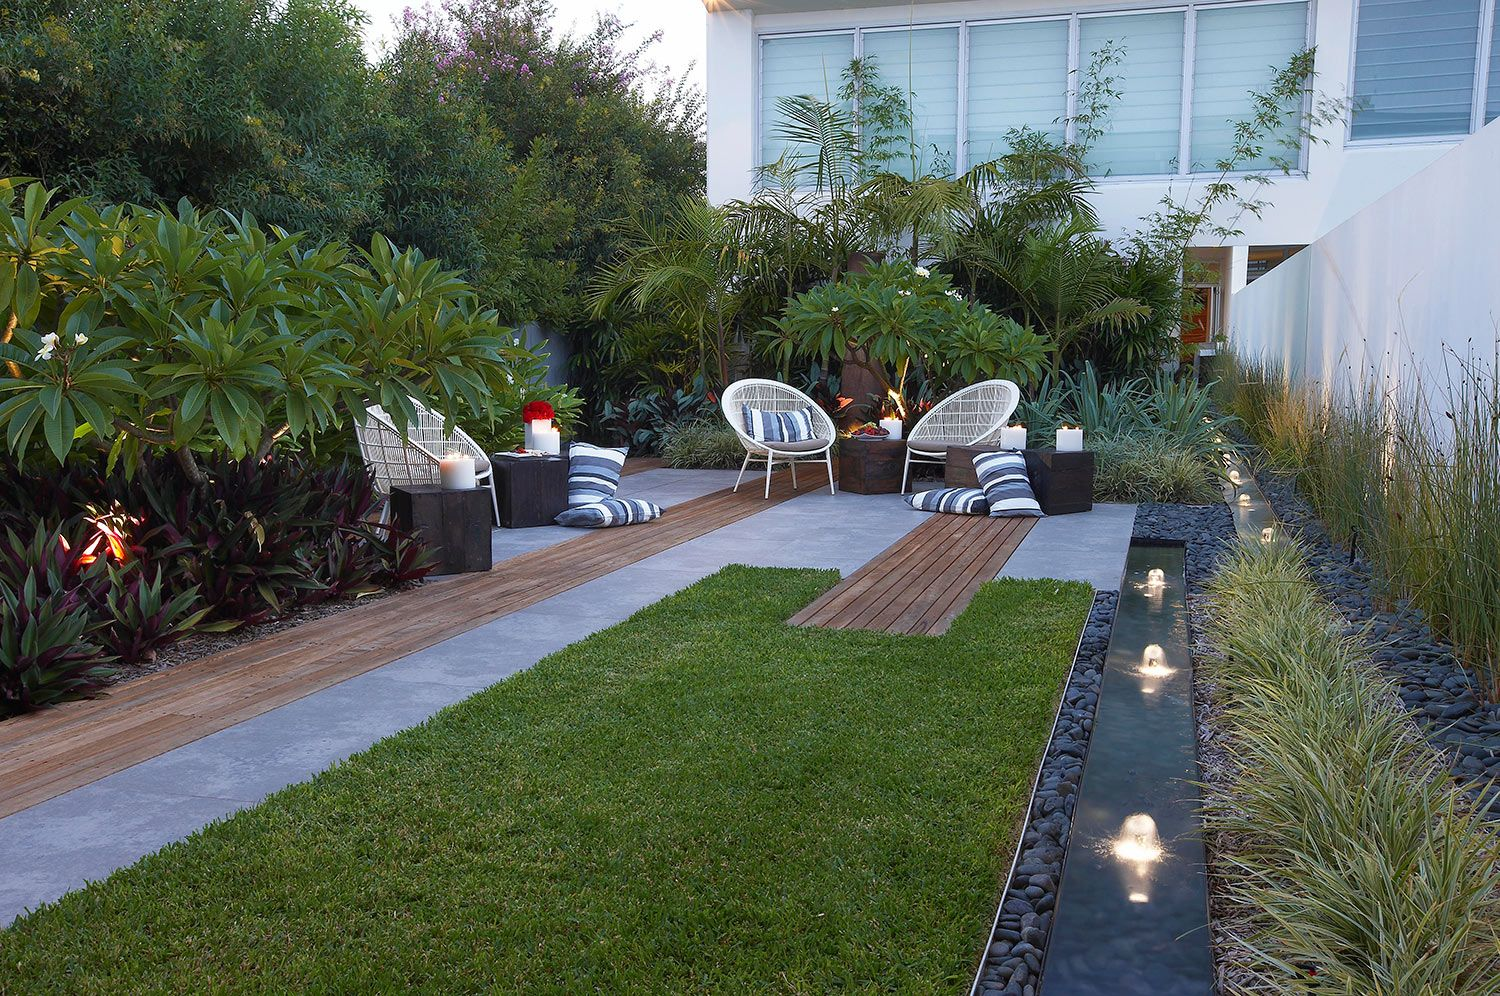 Rolling stone landscapes - 30 Modern Landscape Design Ideas From Rolling Stone